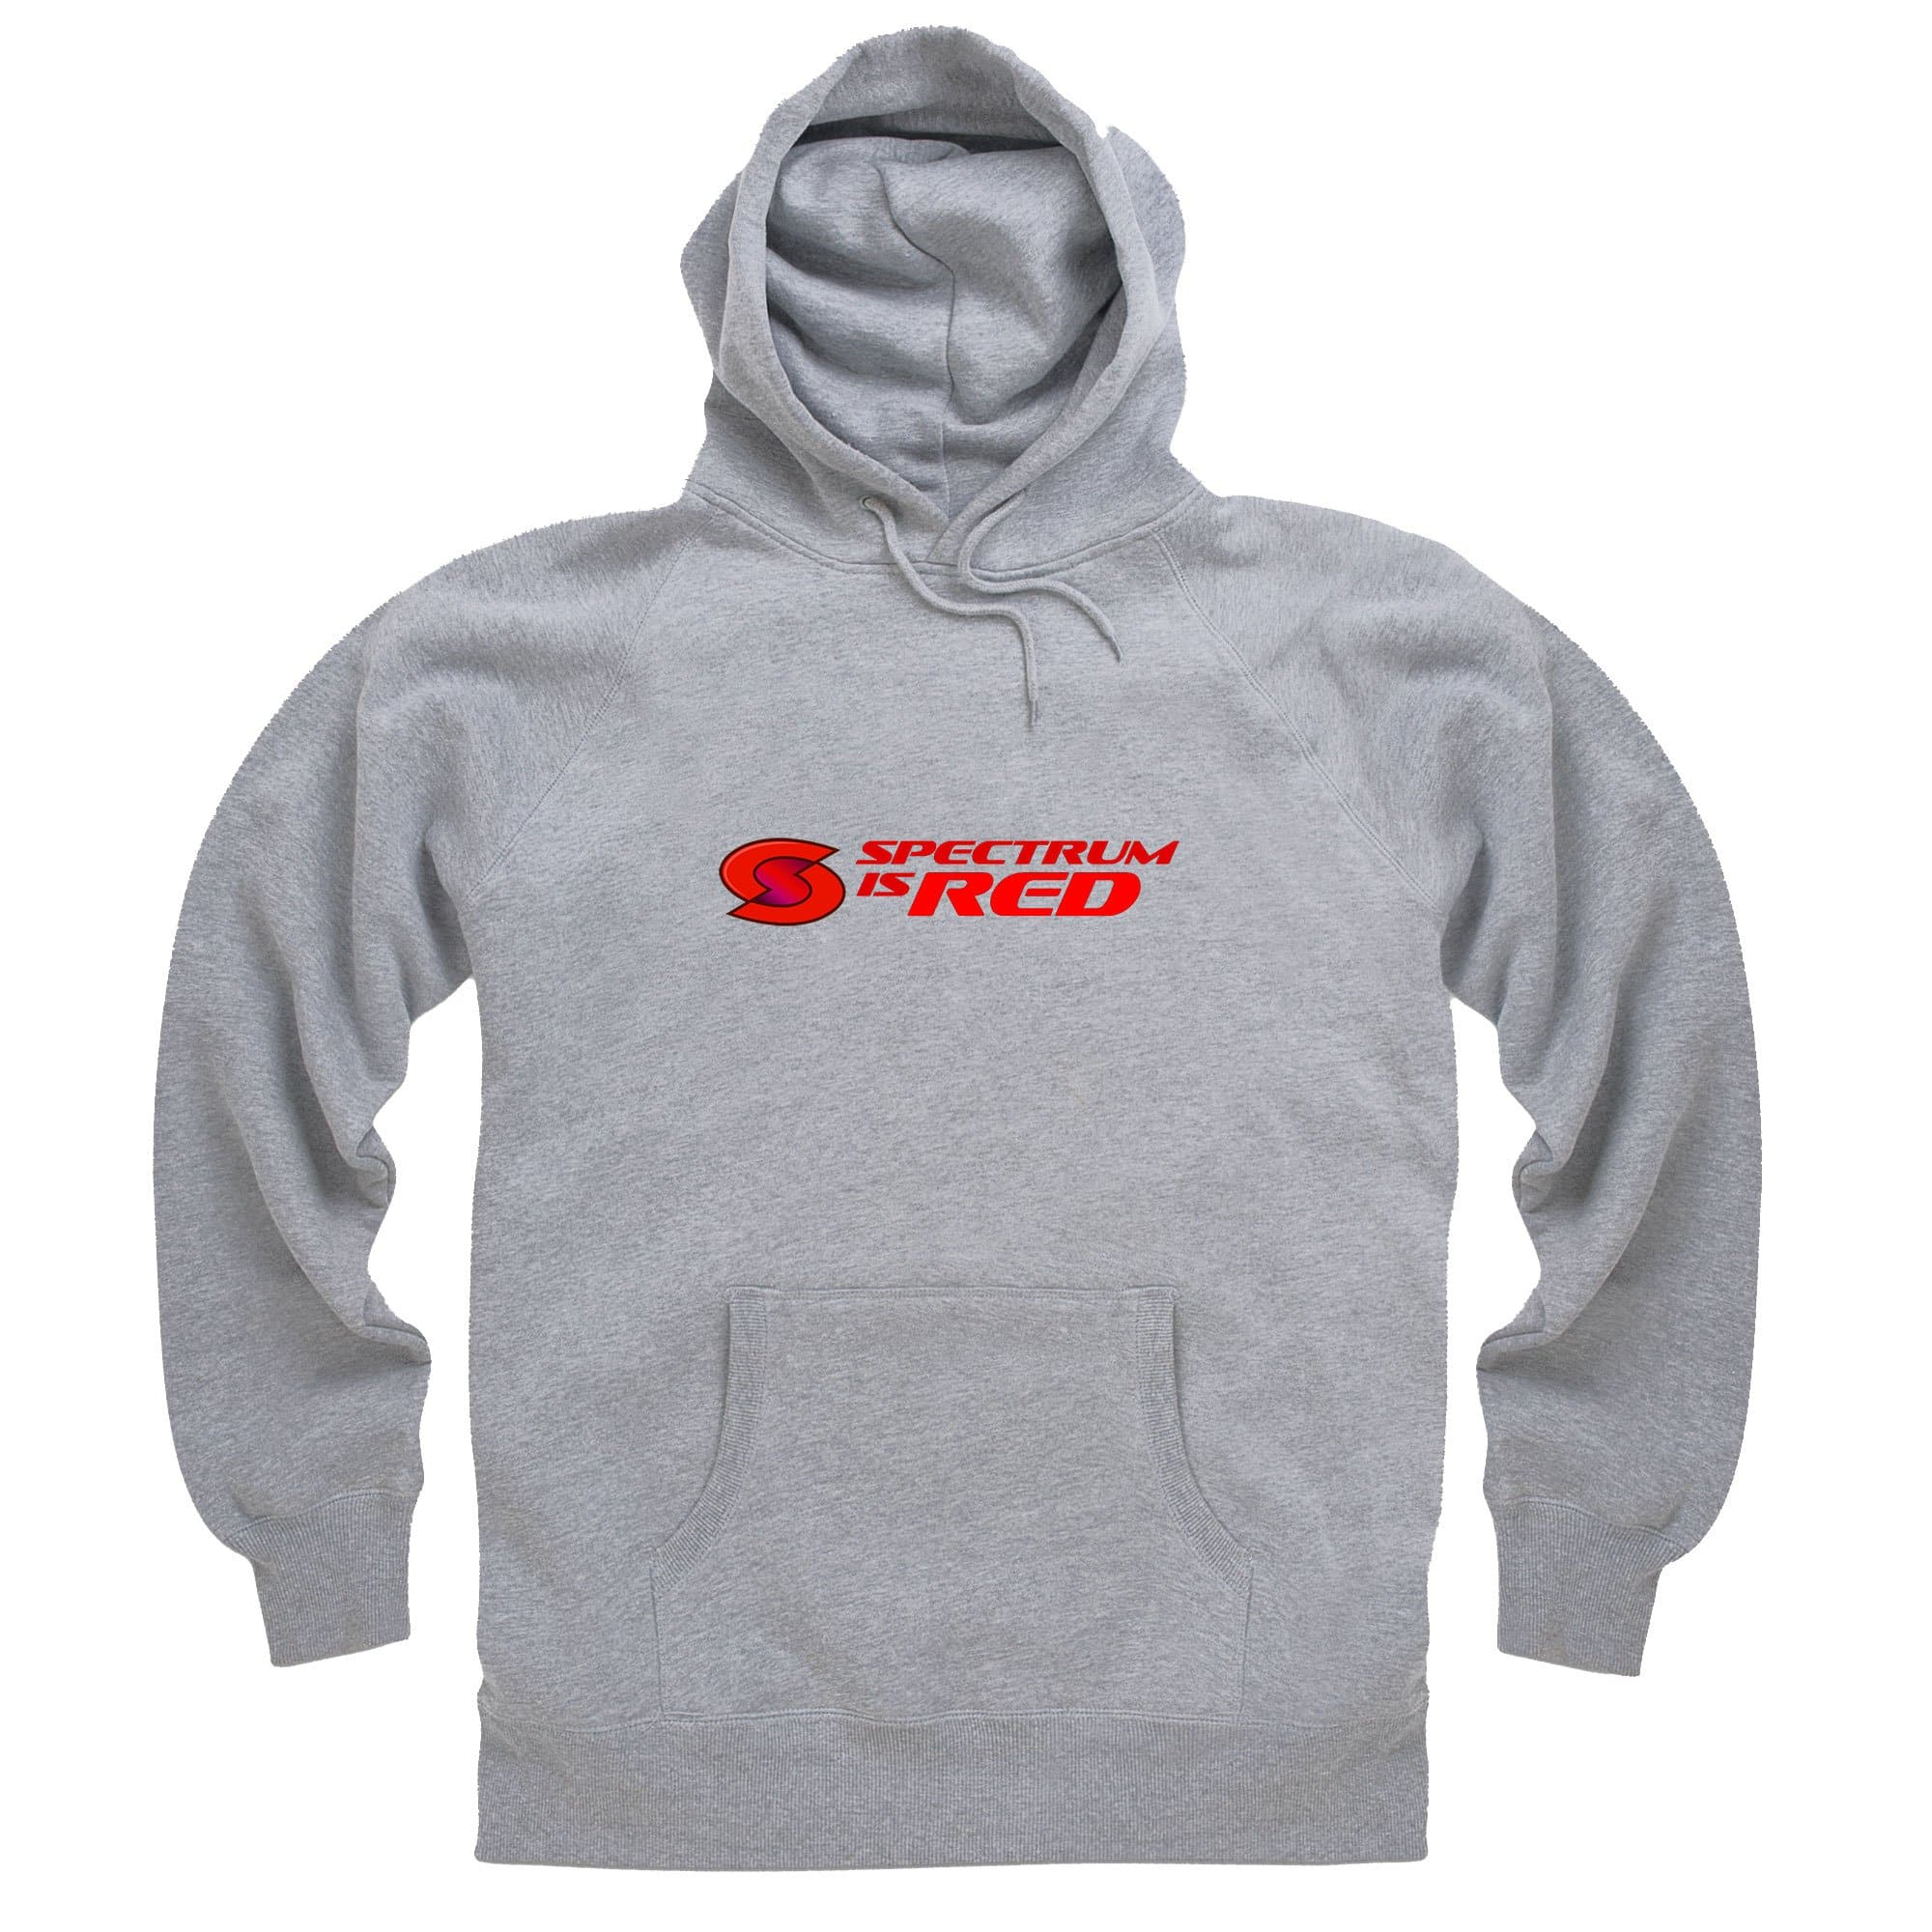 Spectrum Is Red Hoodie [Official & Exclusive] - The Gerry Anderson Store